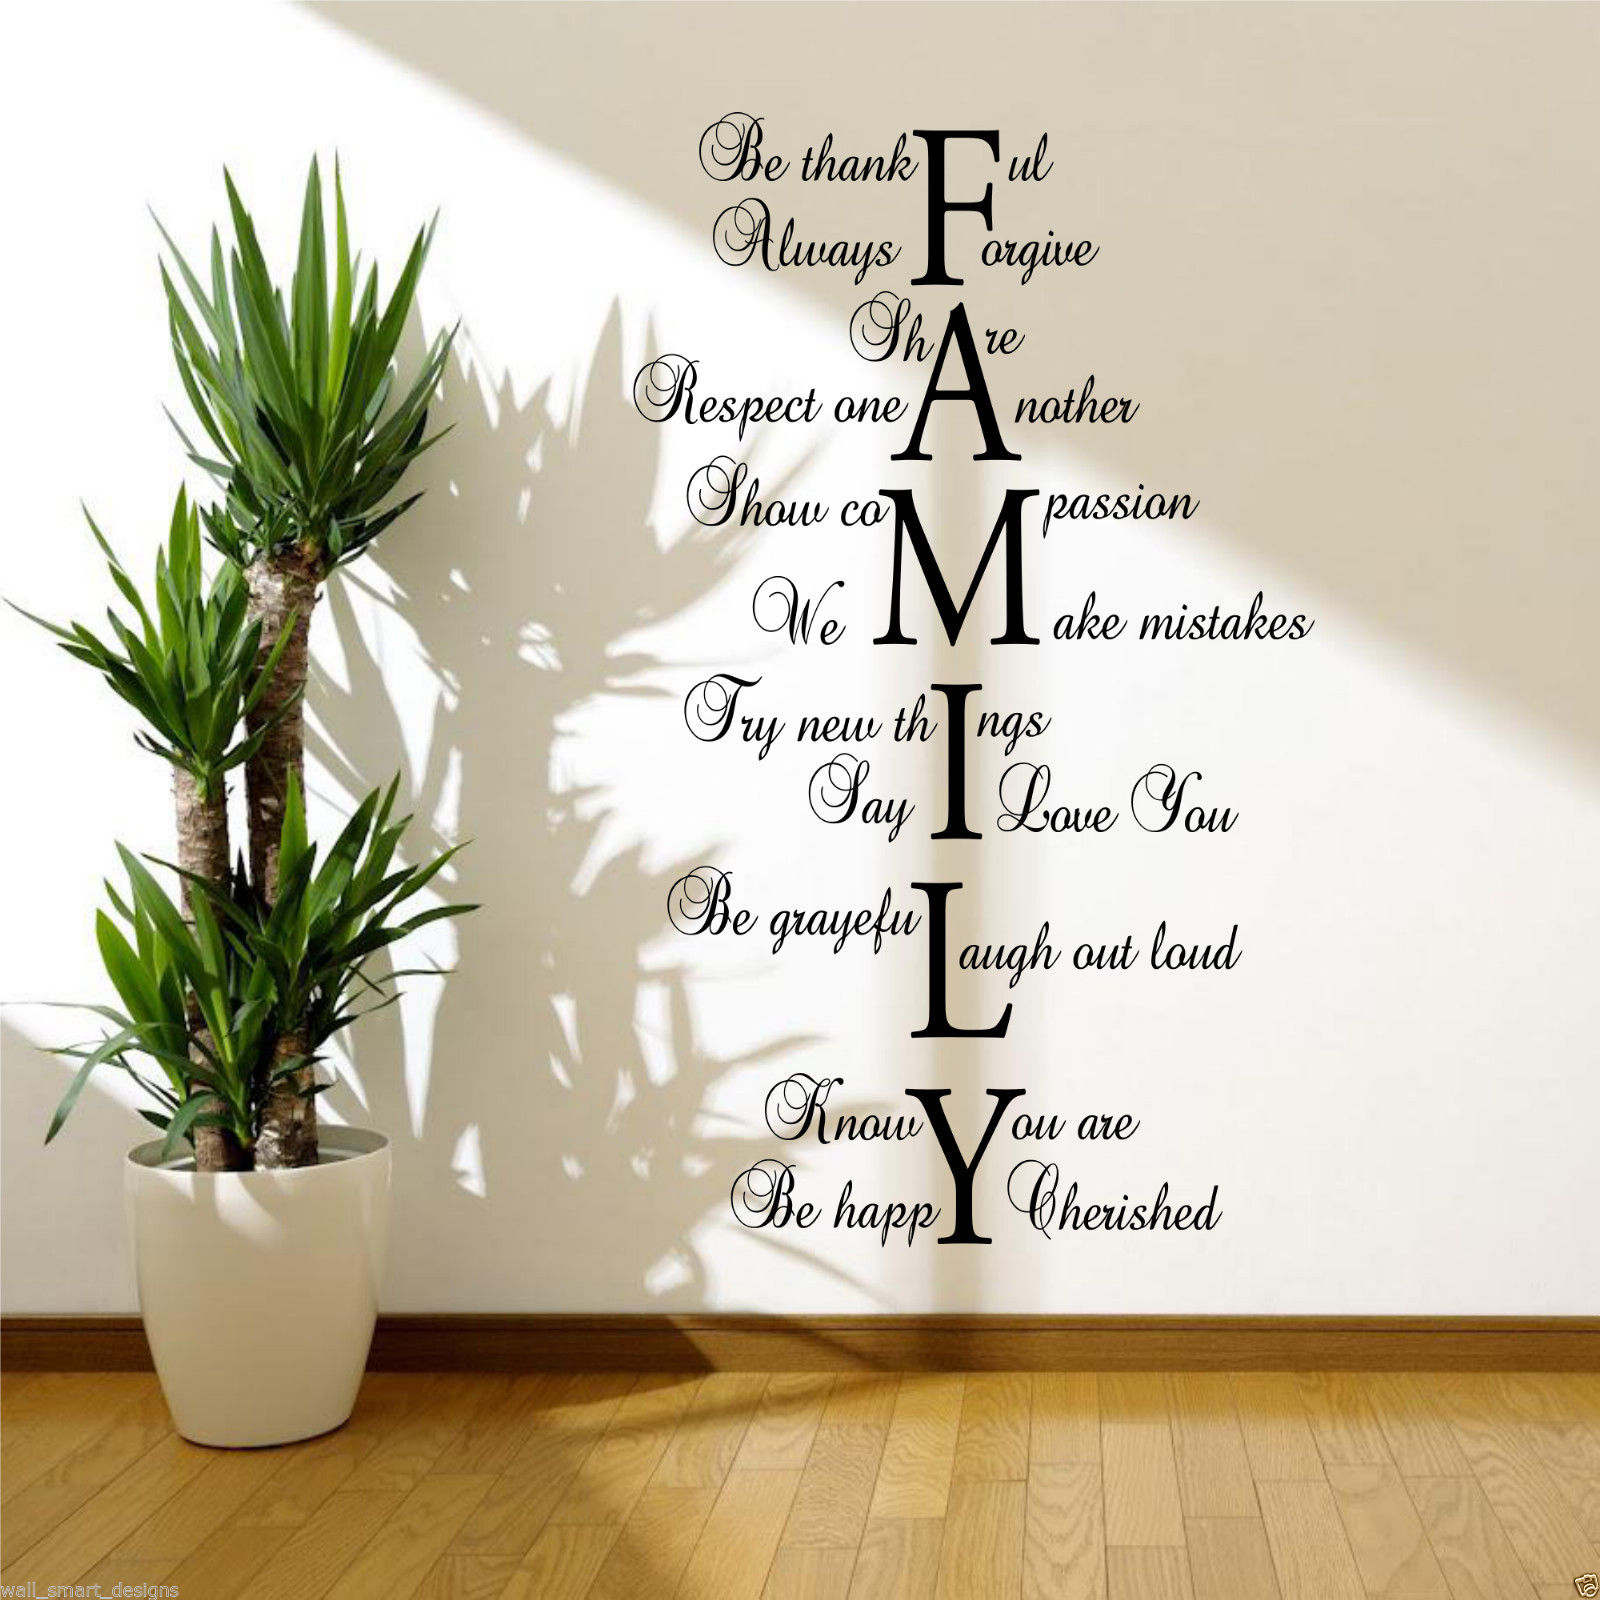 Love Life Family Quotes Entrancing Family Love Life Wall Art Sticker Quote Room Decal Mural Transfer